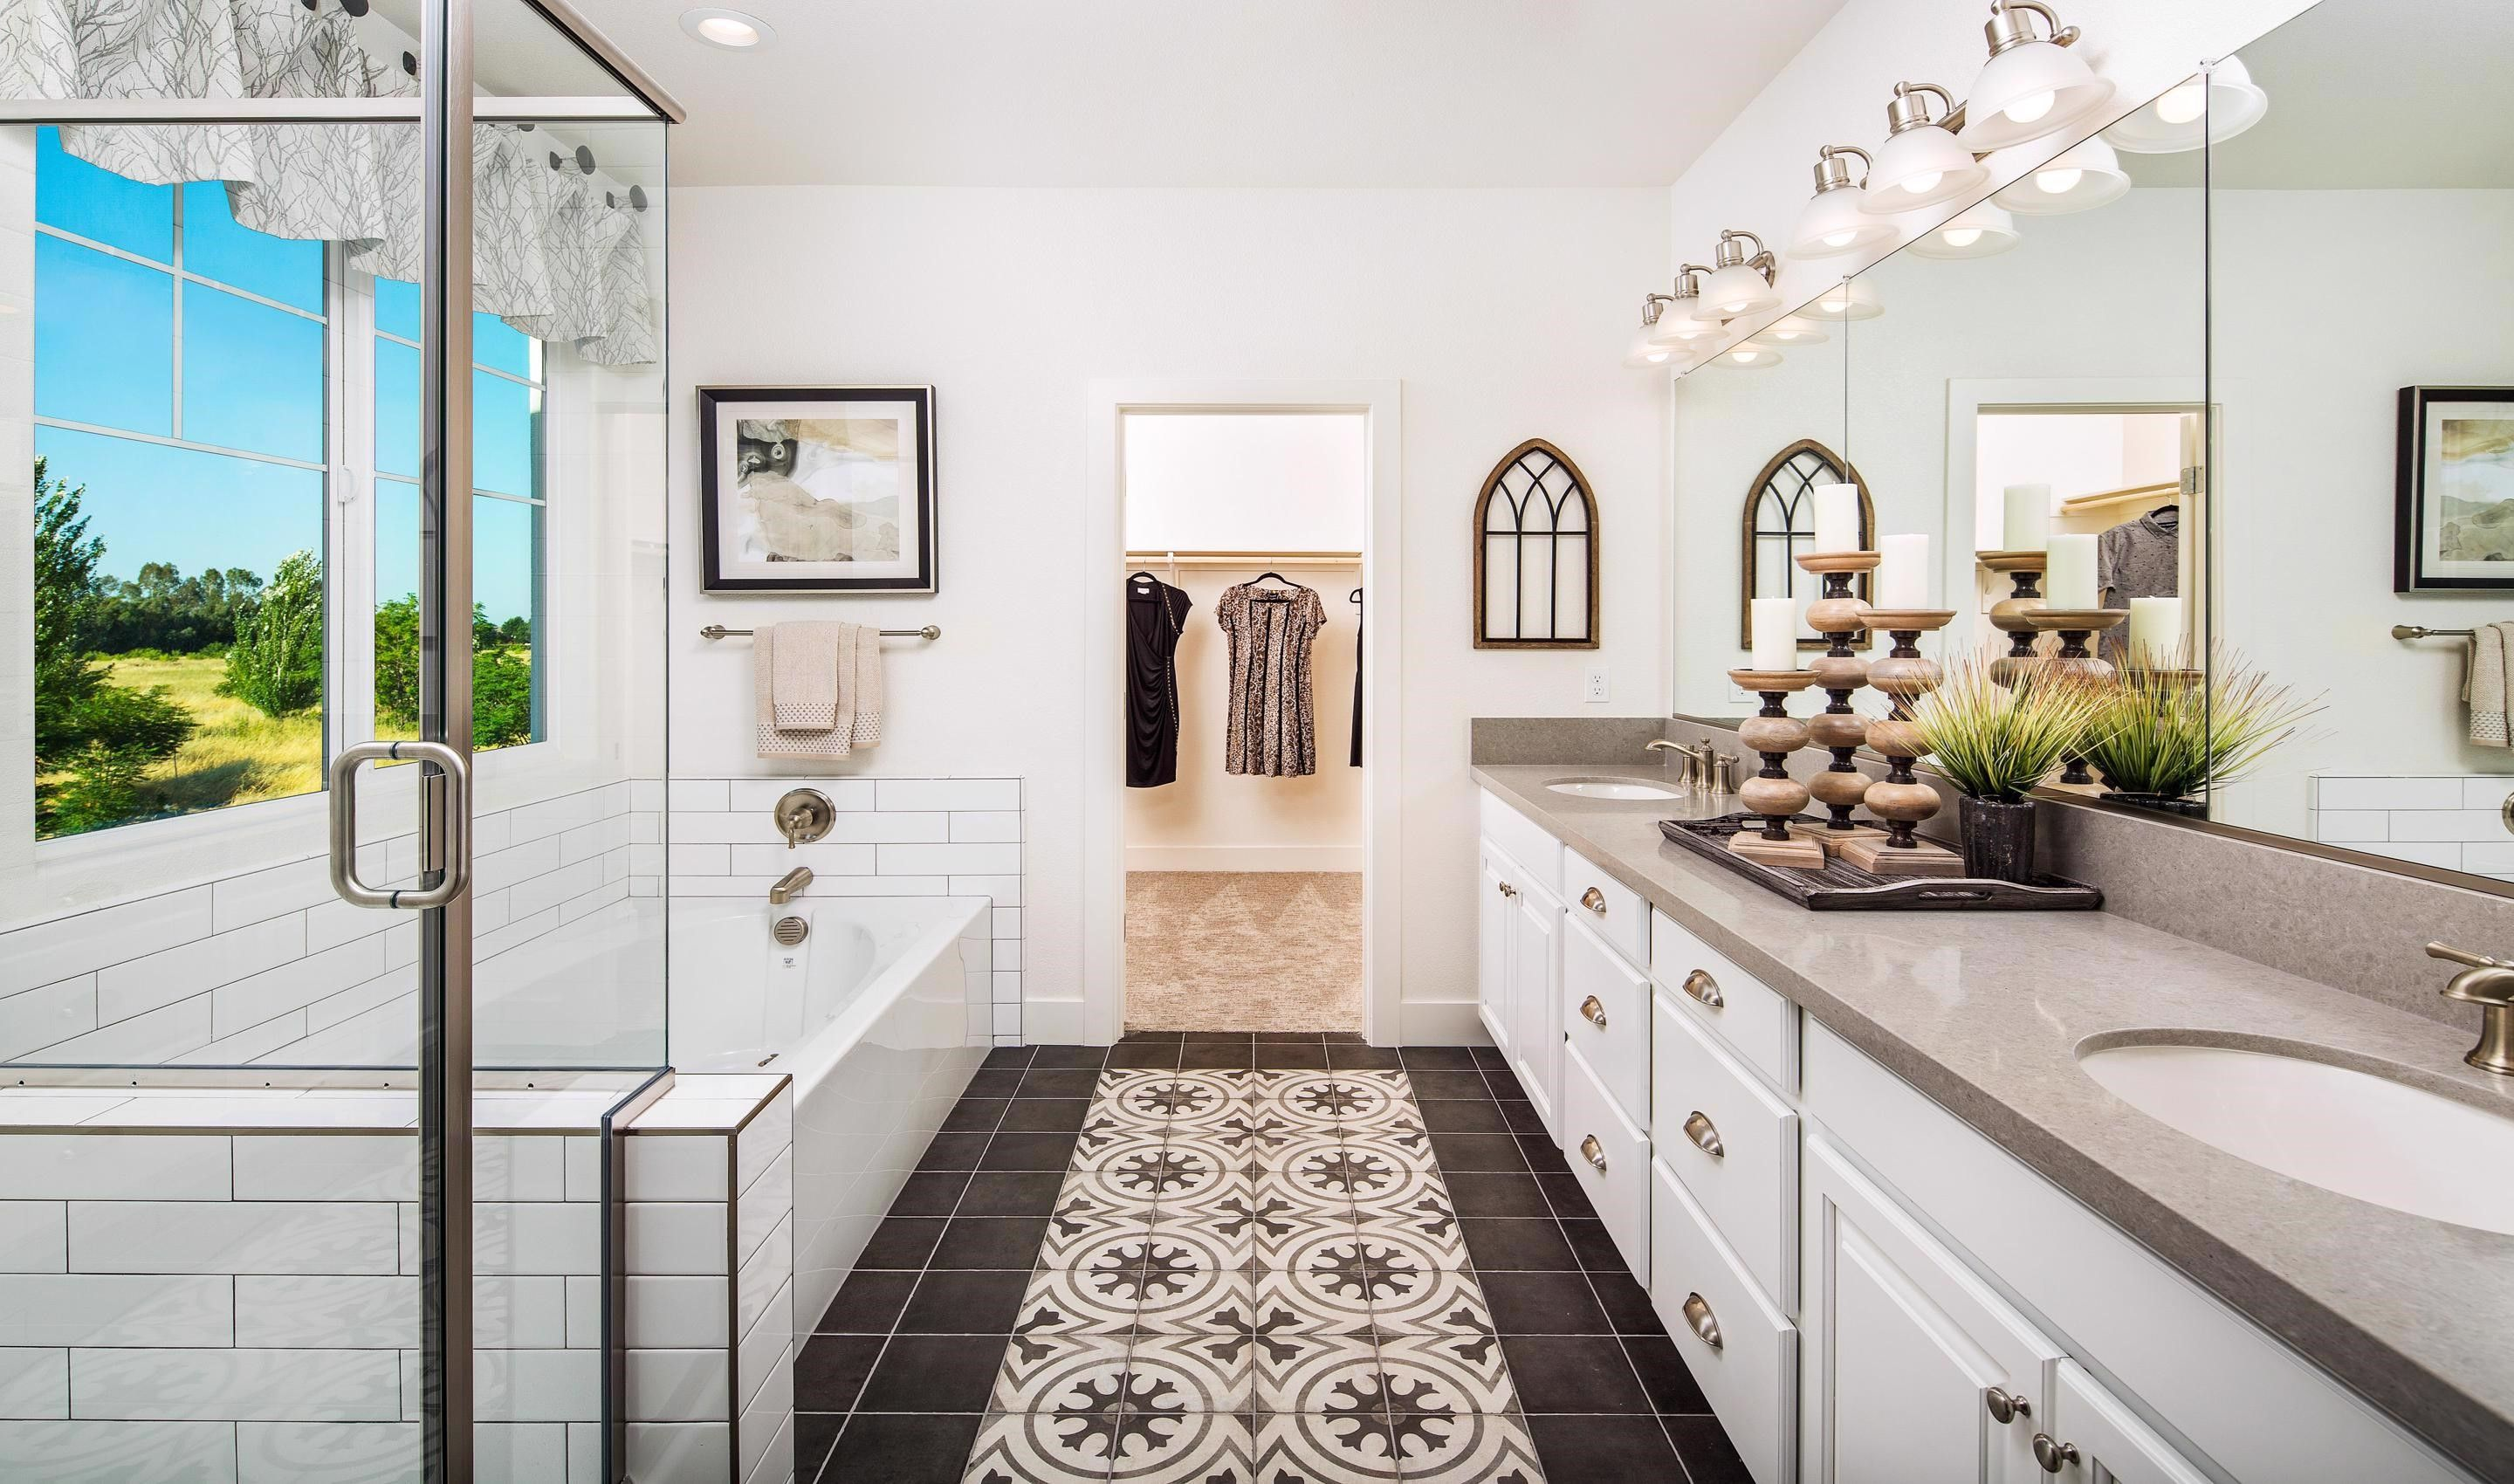 Bathroom featured in the Triumph By K. Hovnanian® Homes in Oakland-Alameda, CA